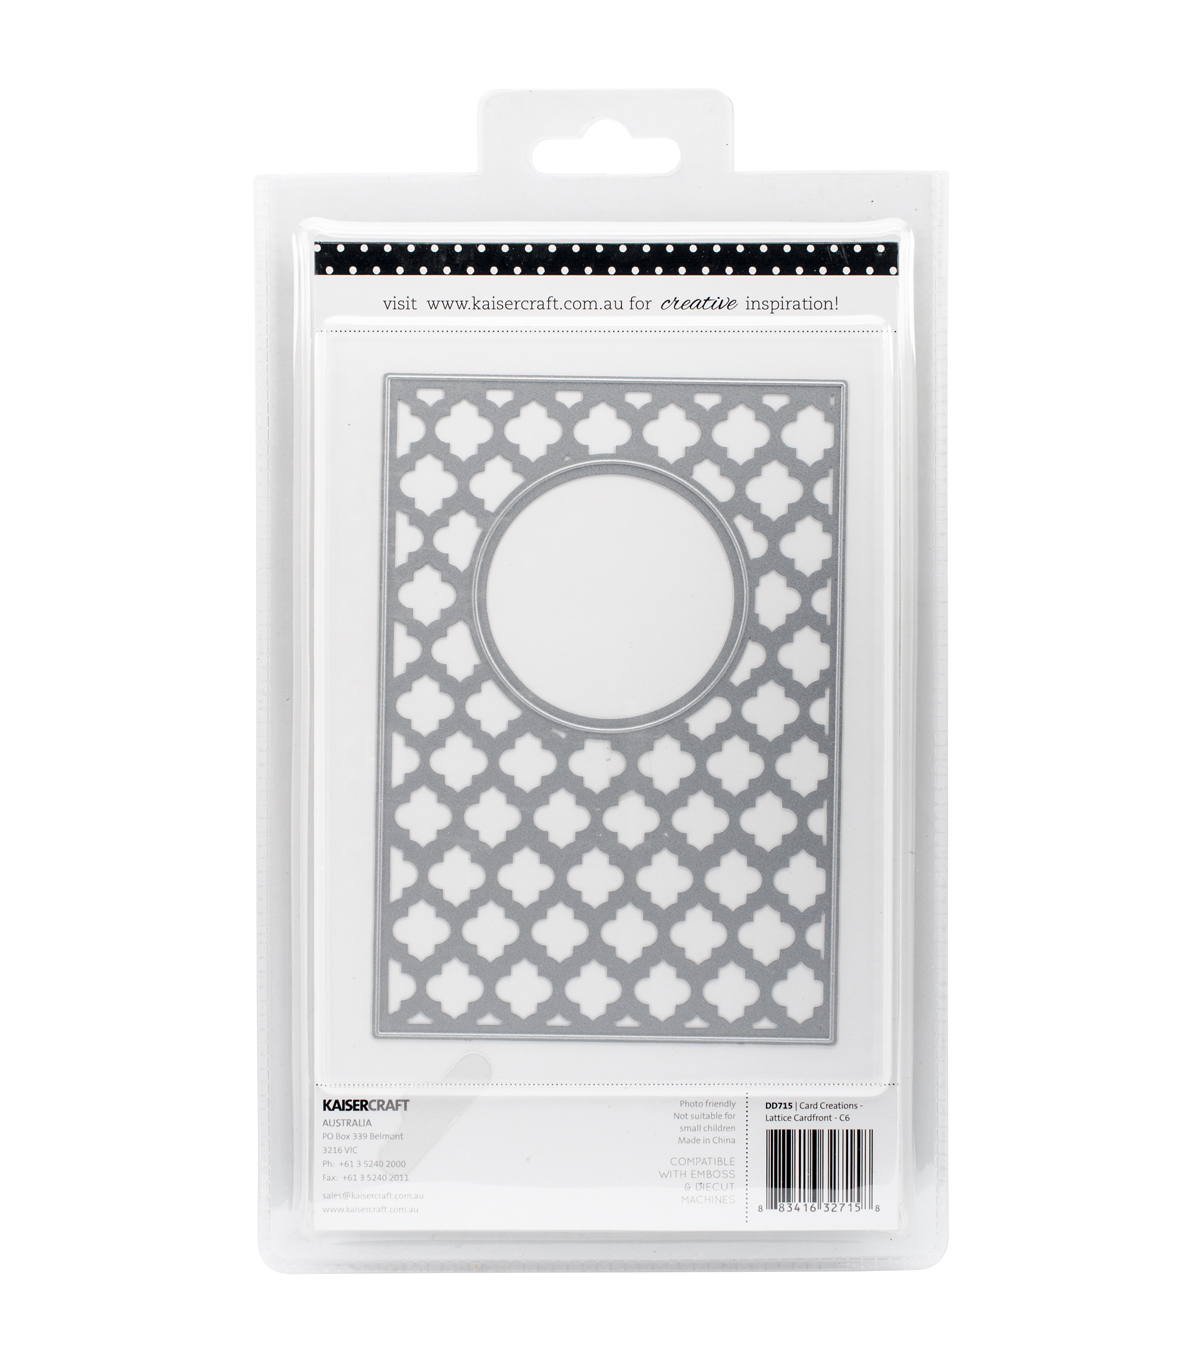 Kaisercraft Card Creations Lattice C6 Card Front Dies 4\u0027\u0027x6\u0027\u0027